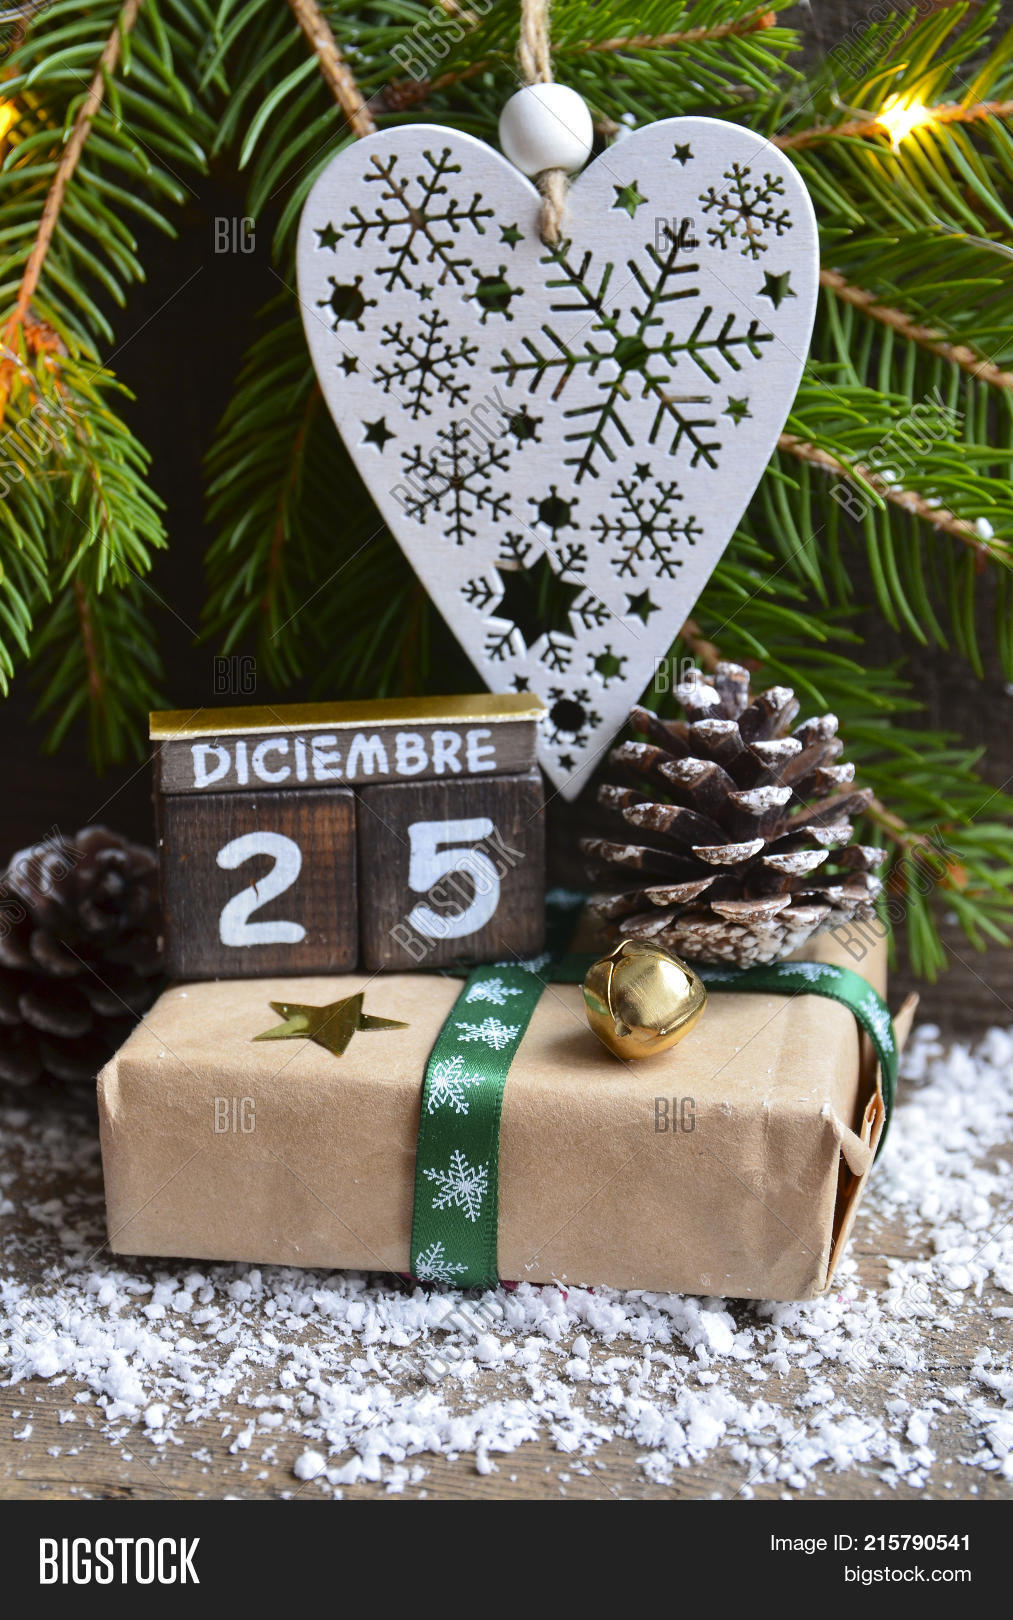 christmas daydiciembre 25 december 25 in spanish language calendar date christmas - Whens Christmas Day